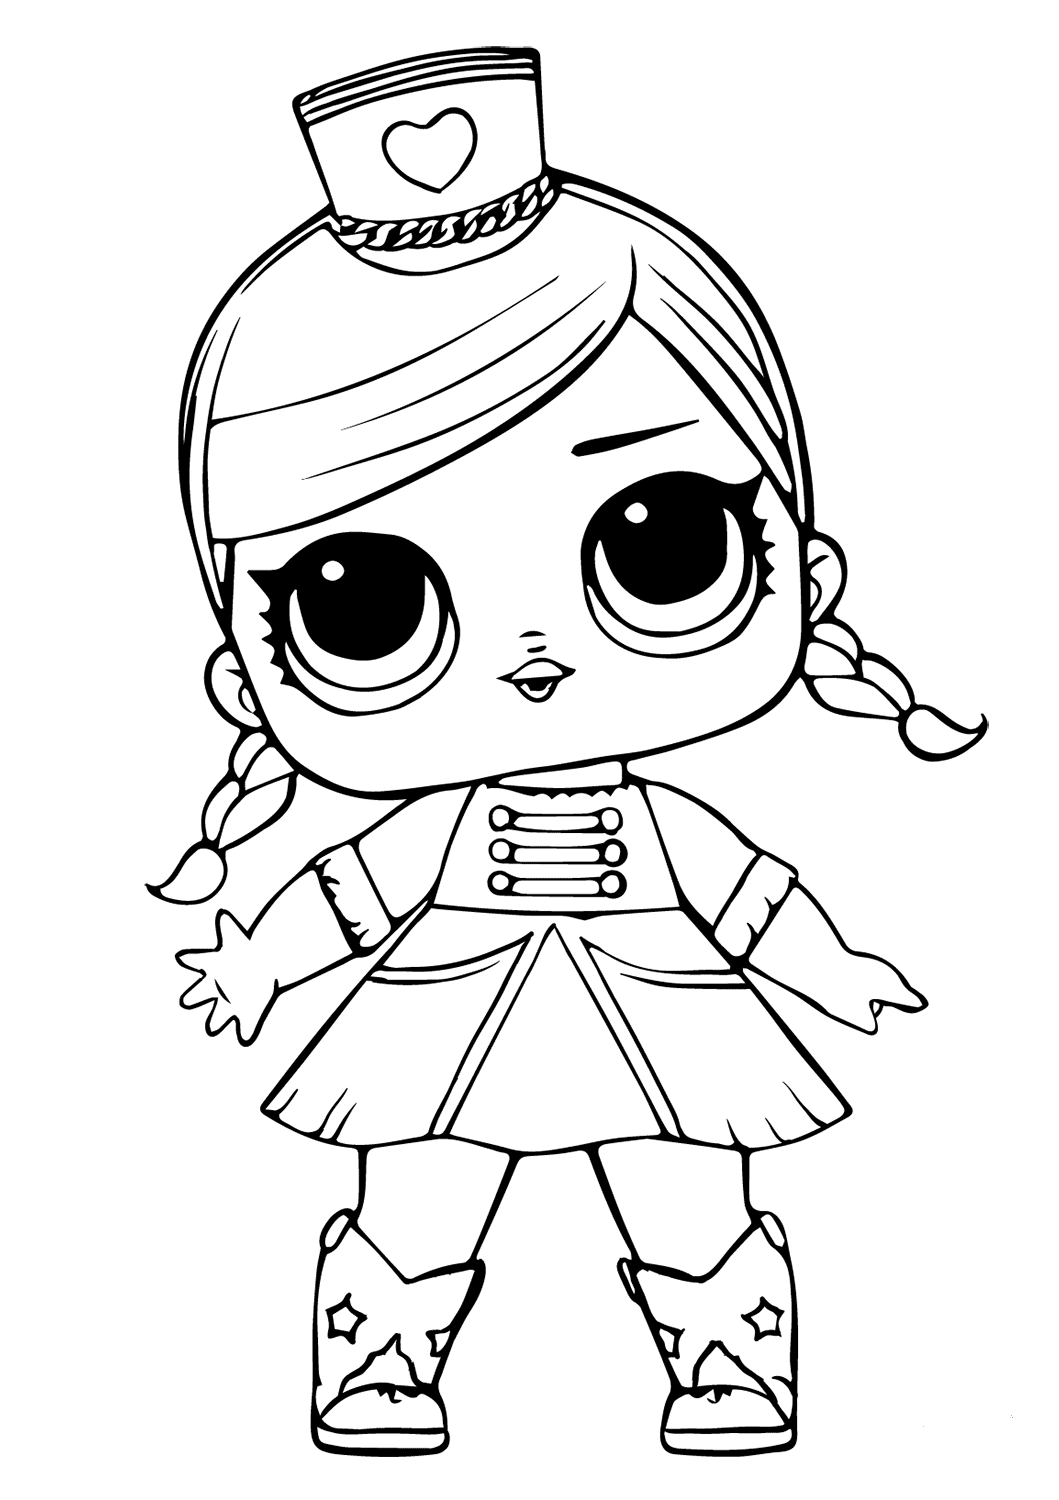 coloring images lol lol surprise dolls coloring pages print them for free lol coloring images 1 1